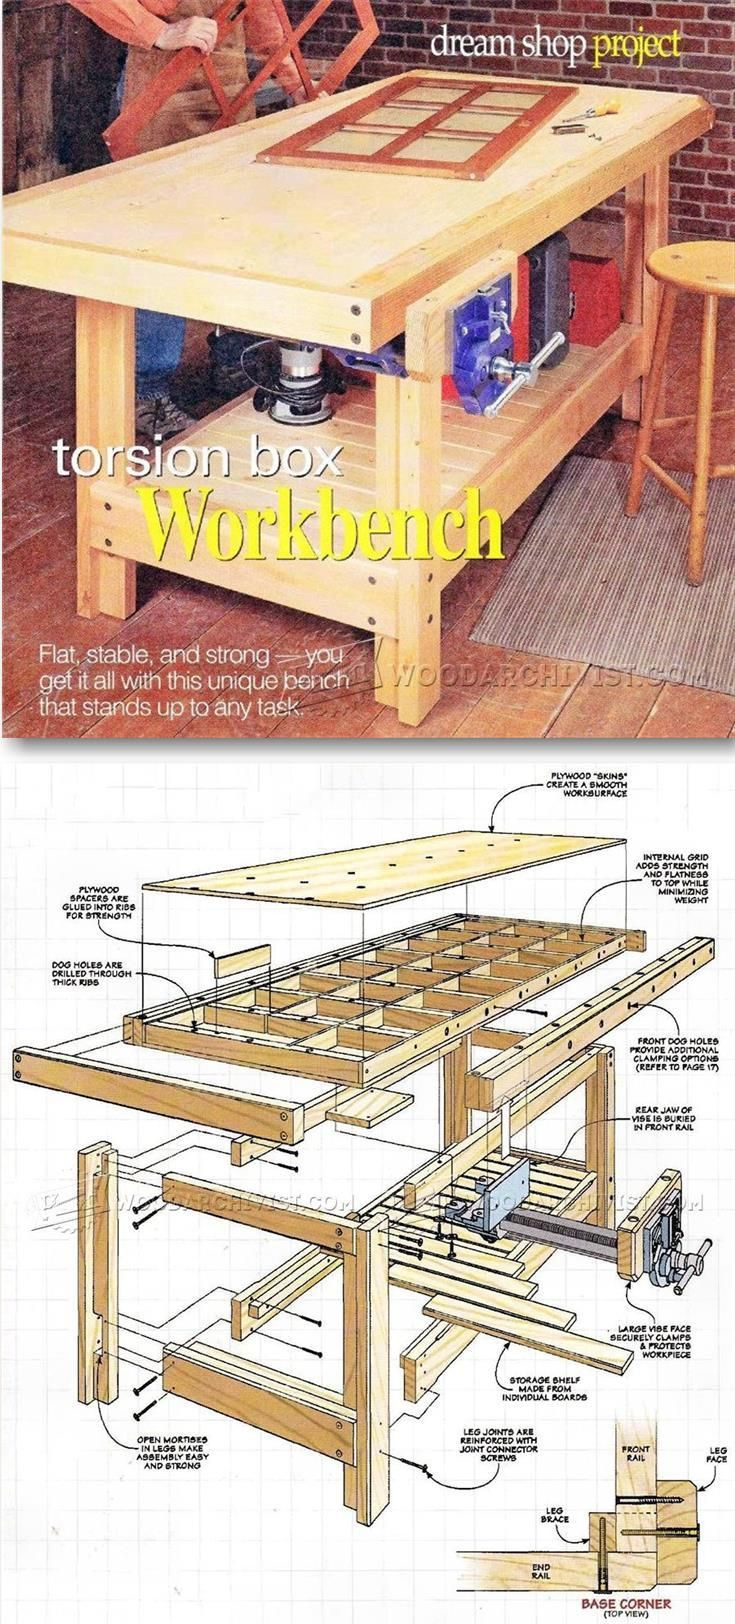 Torsion Box Workbench Plans - Workshop Solutions Plans, Tips and Tricks | WoodArchivist.com